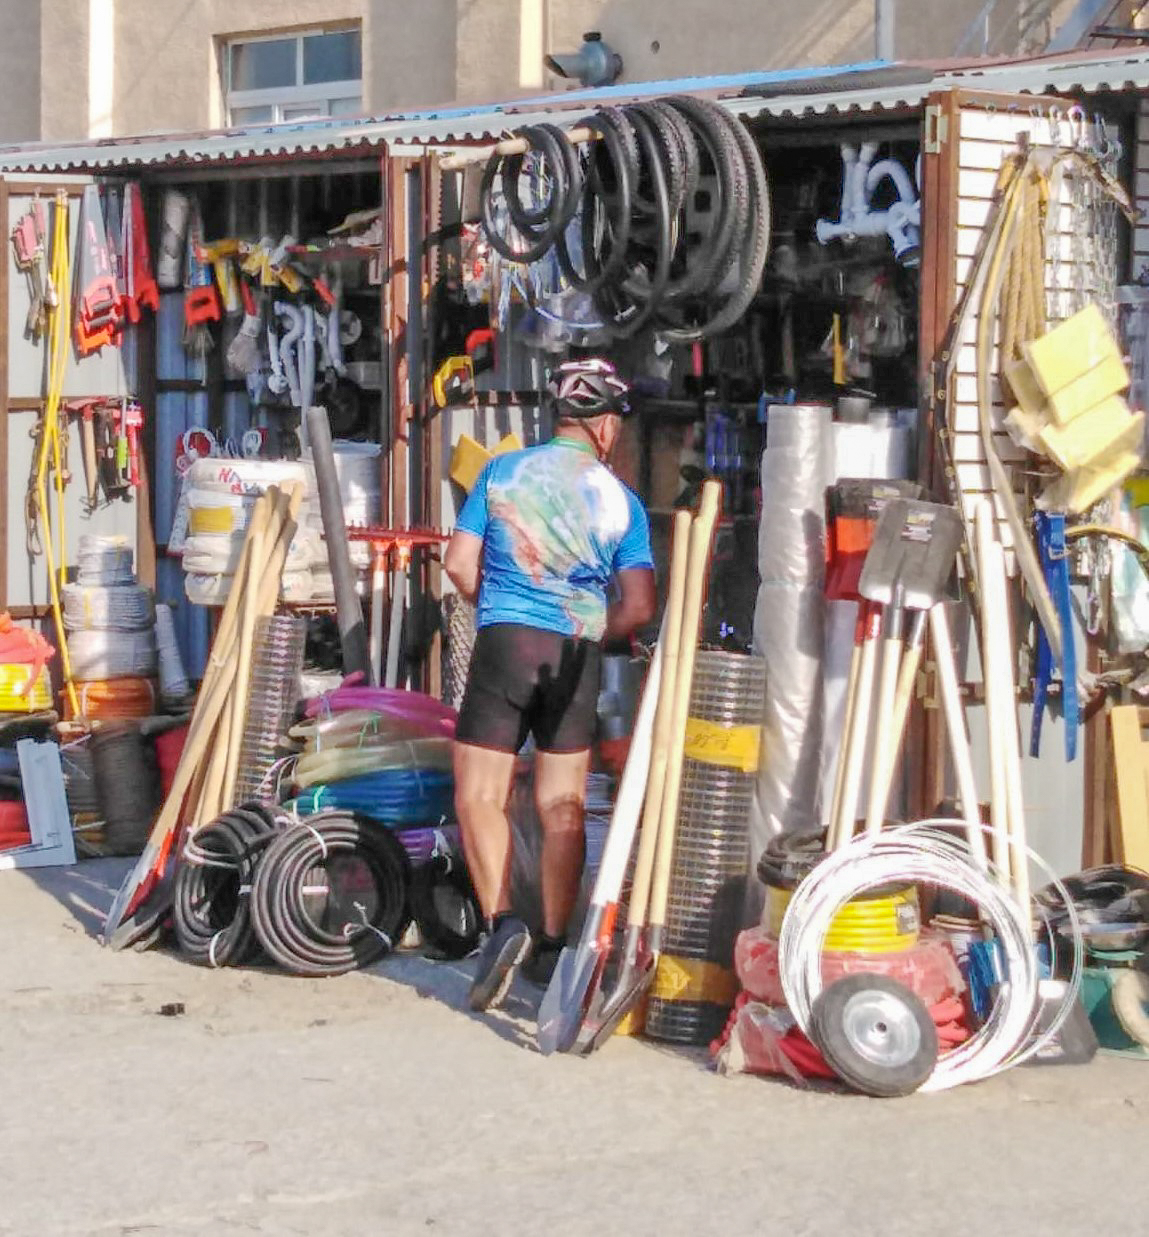 Keith buying tyres and inner tubes at the local market